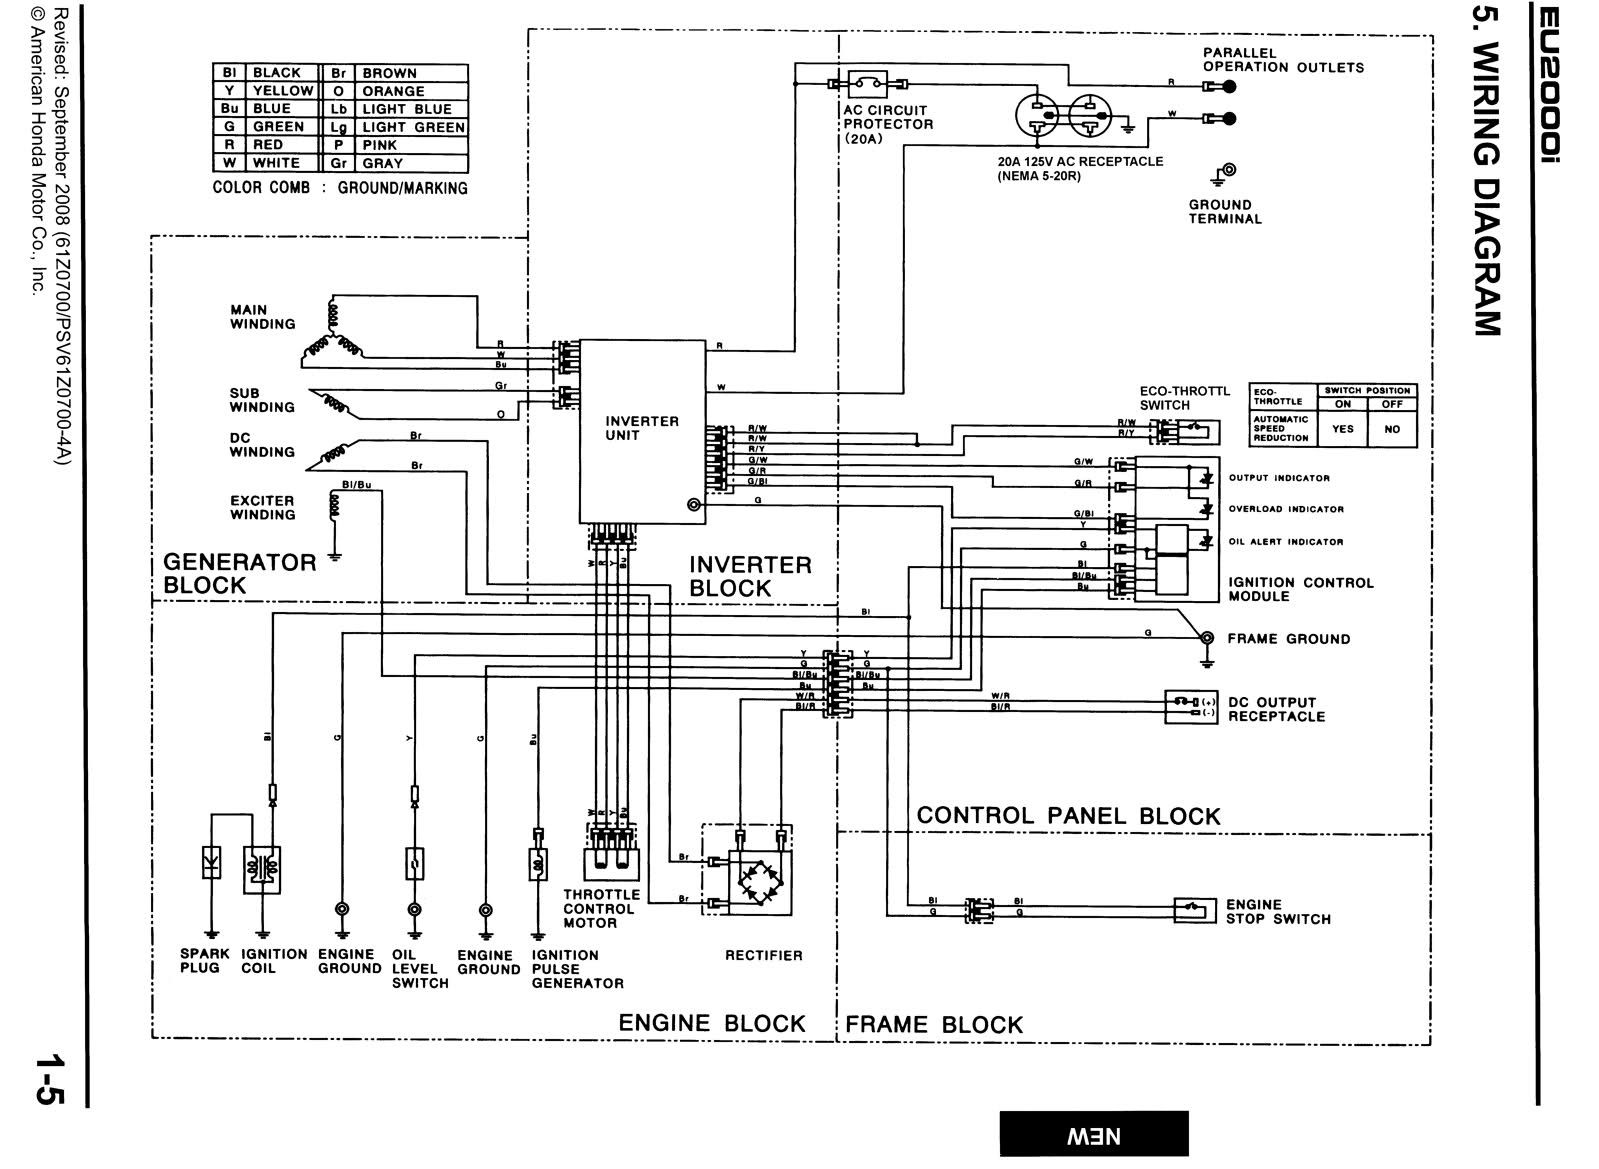 Holiday Rambler Wiring Diagrams Just Wiring Data 68 Rambler 64 Rambler  Wiring Diagram